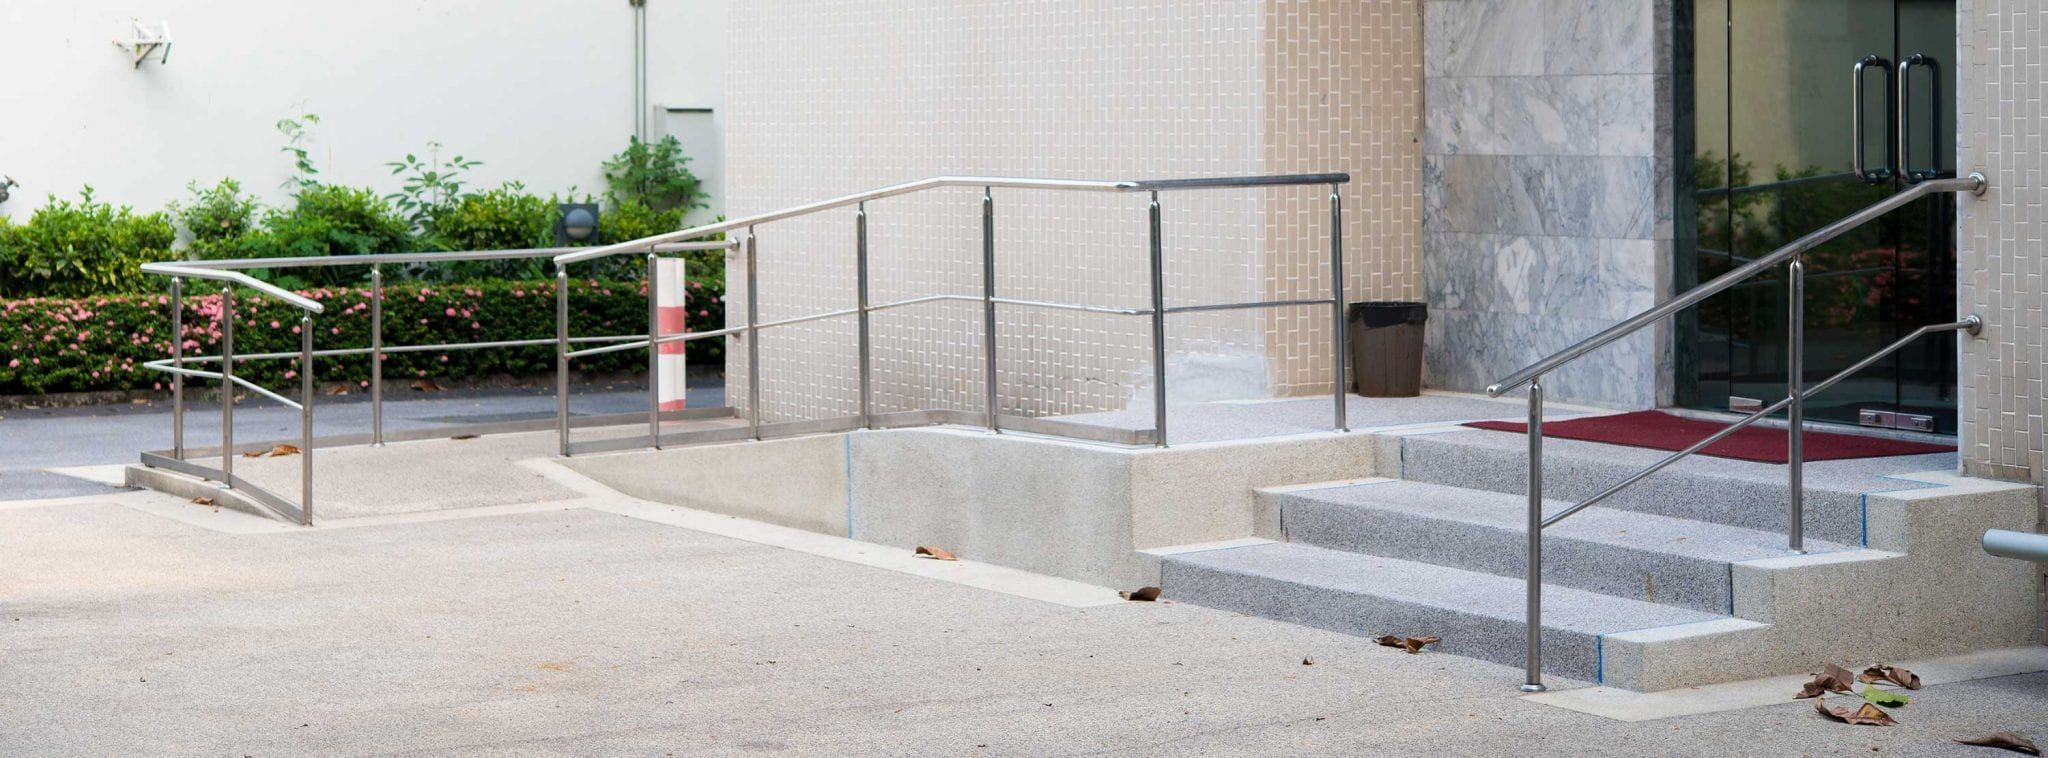 Office space made accessible with ramp